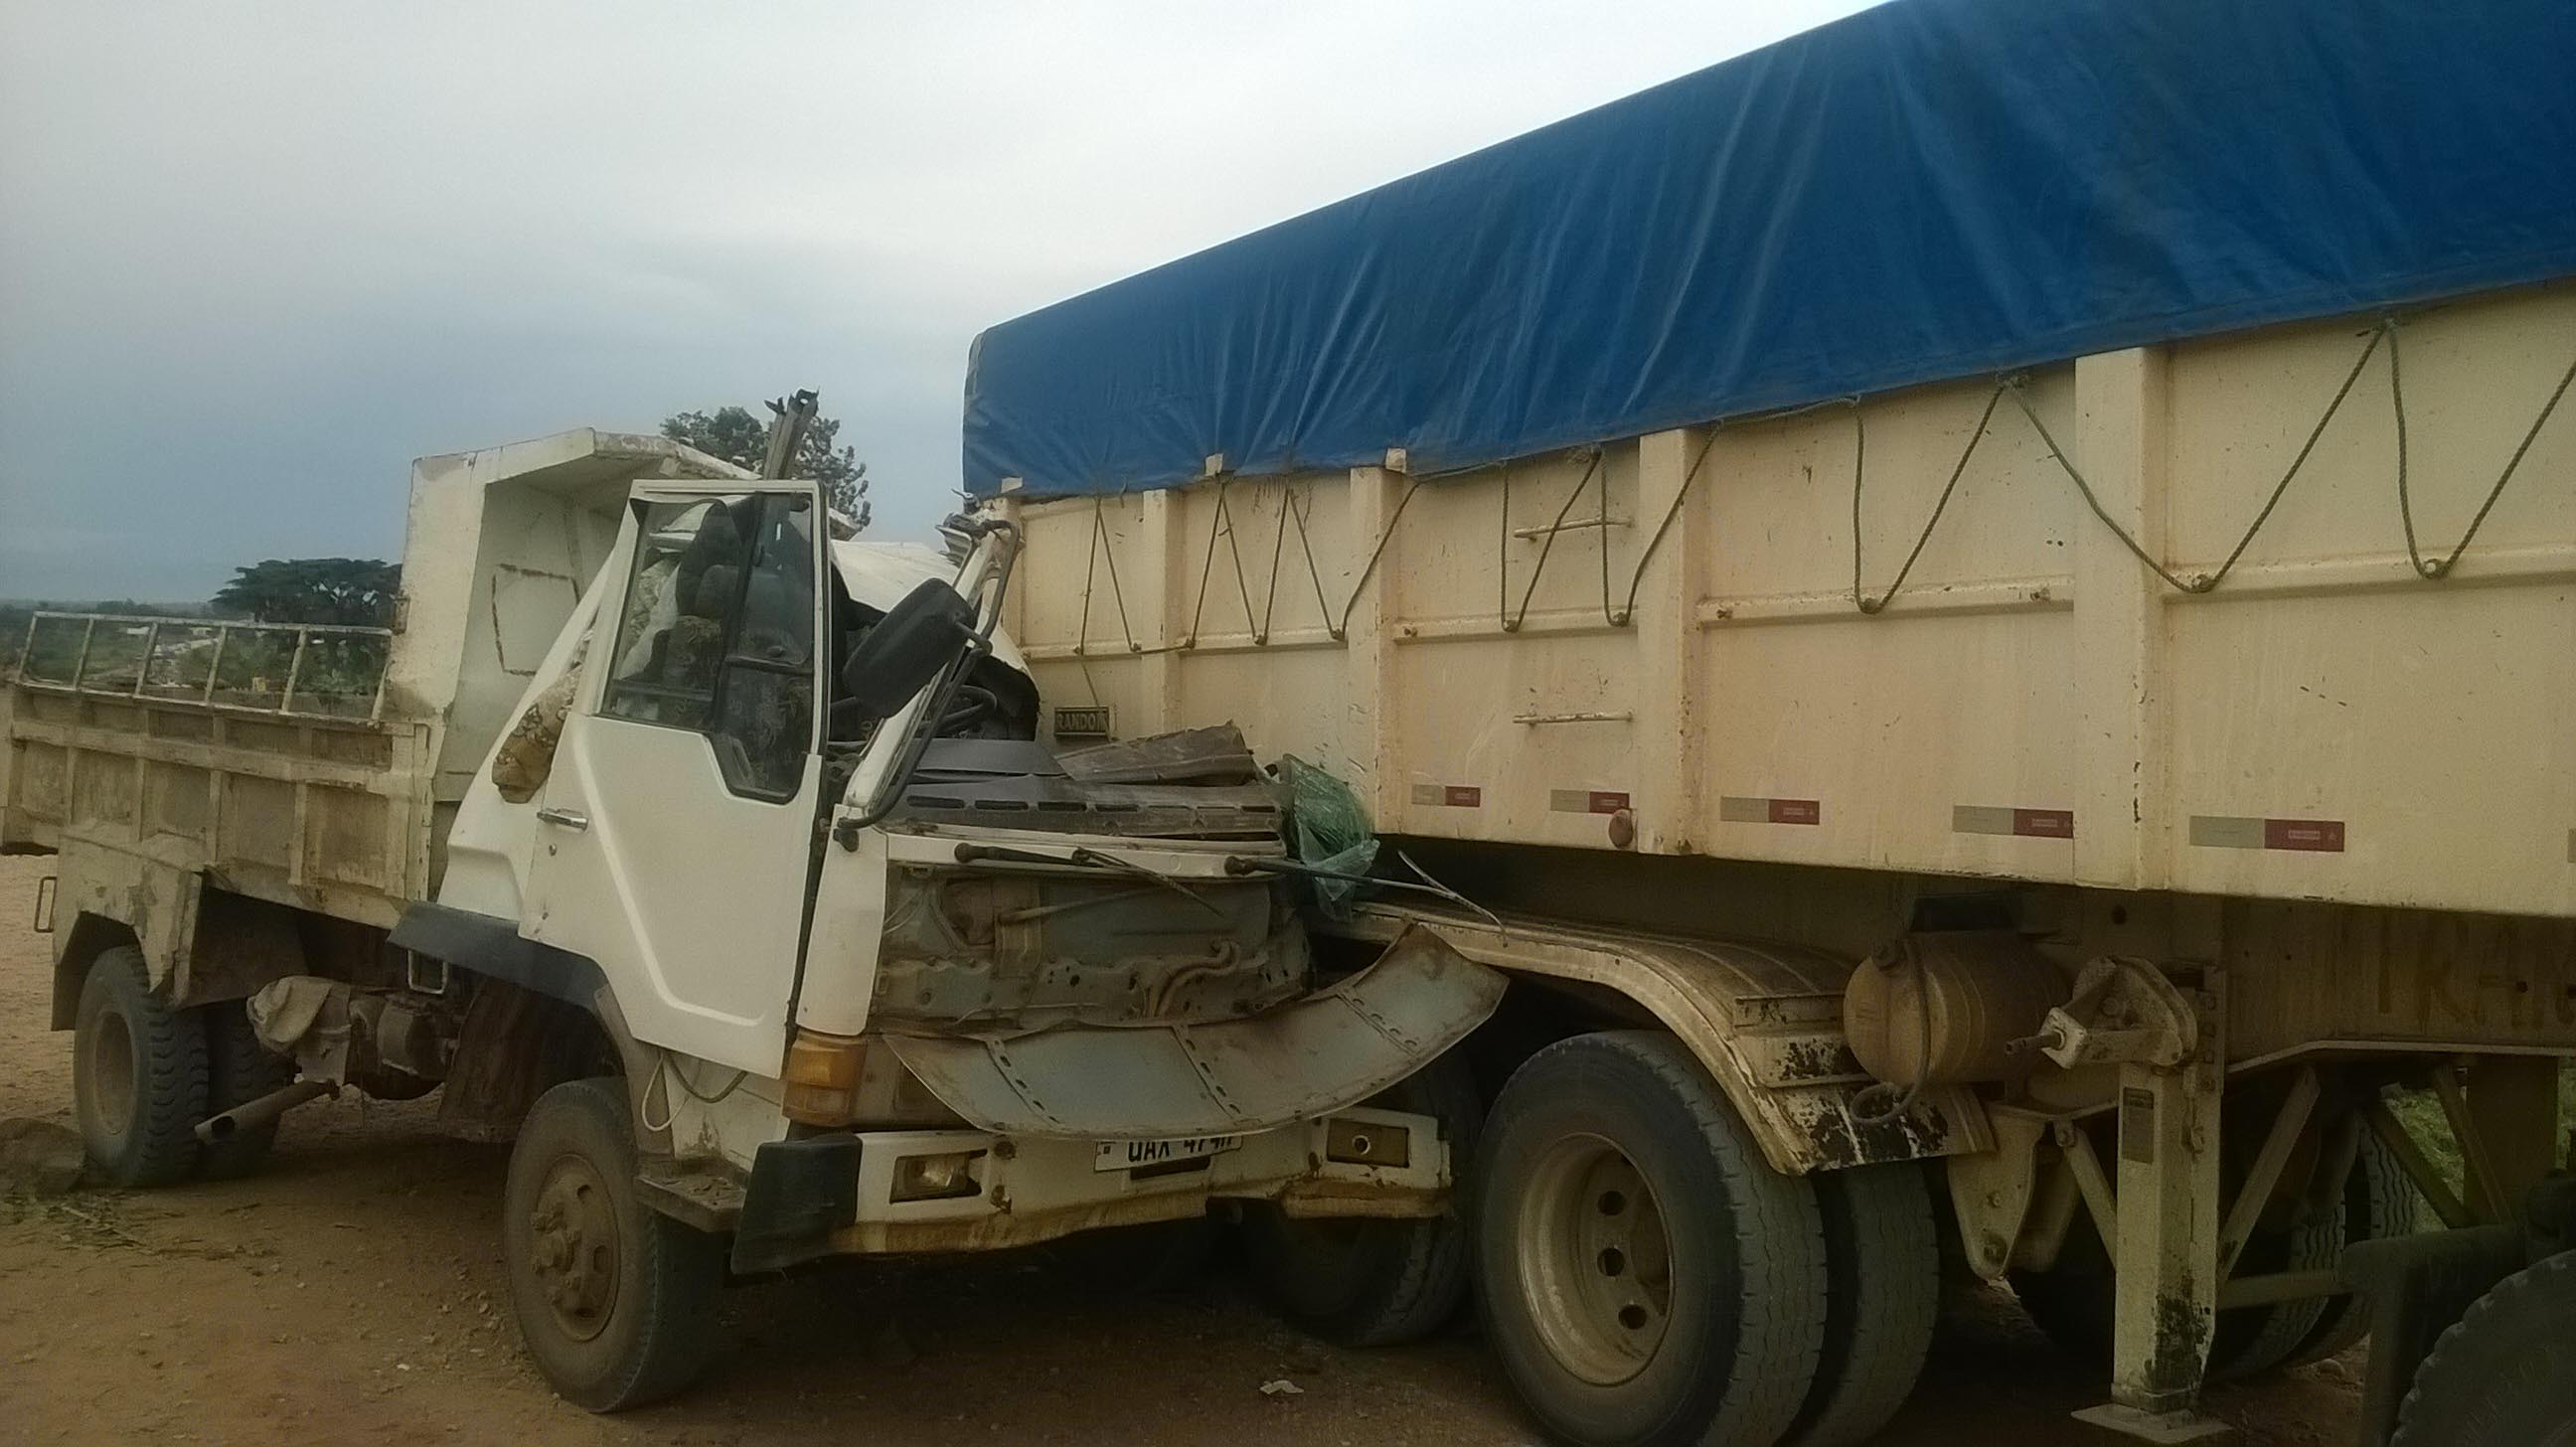 The tipper lorry slammed into the back of a larger truck on the Mbale-Tirinyi highway. Photo by Arthur Wadero